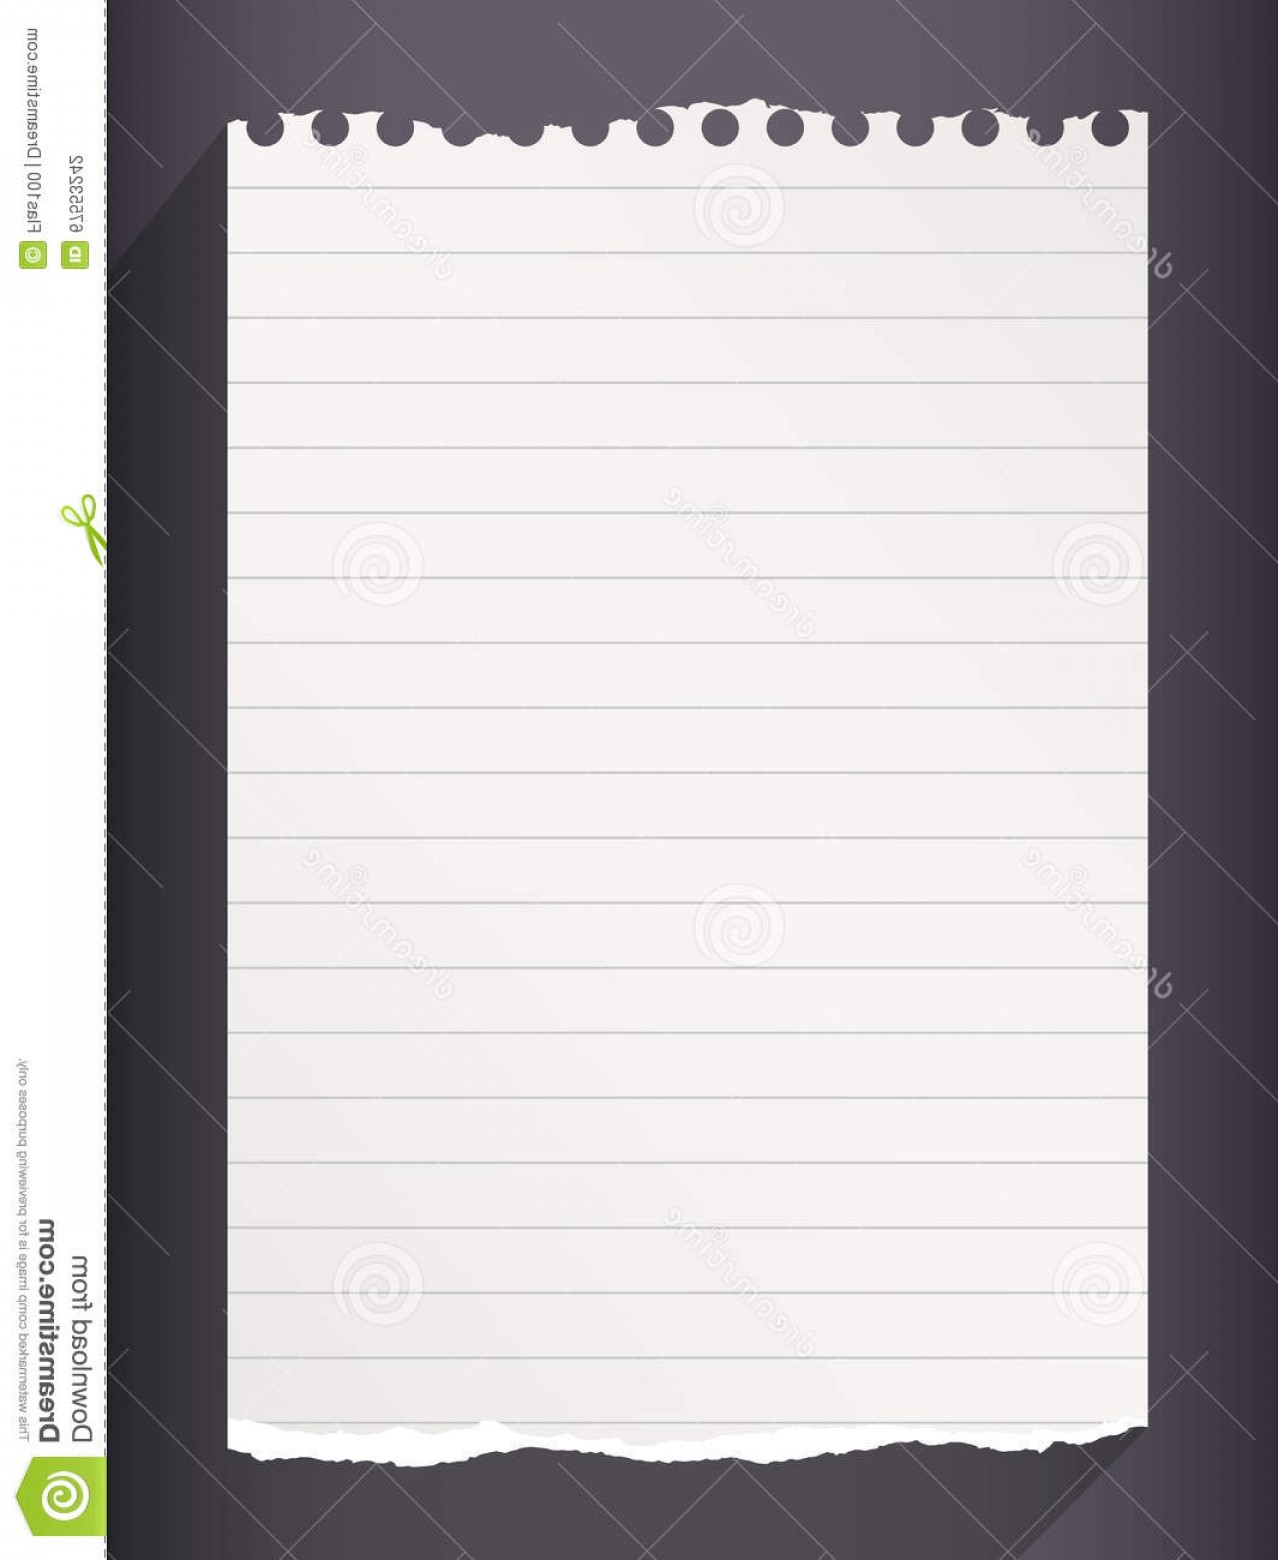 Ripped Black And White Vector: Stock Illustration Piece Torn White Lined Notebook Paper Black Background Image